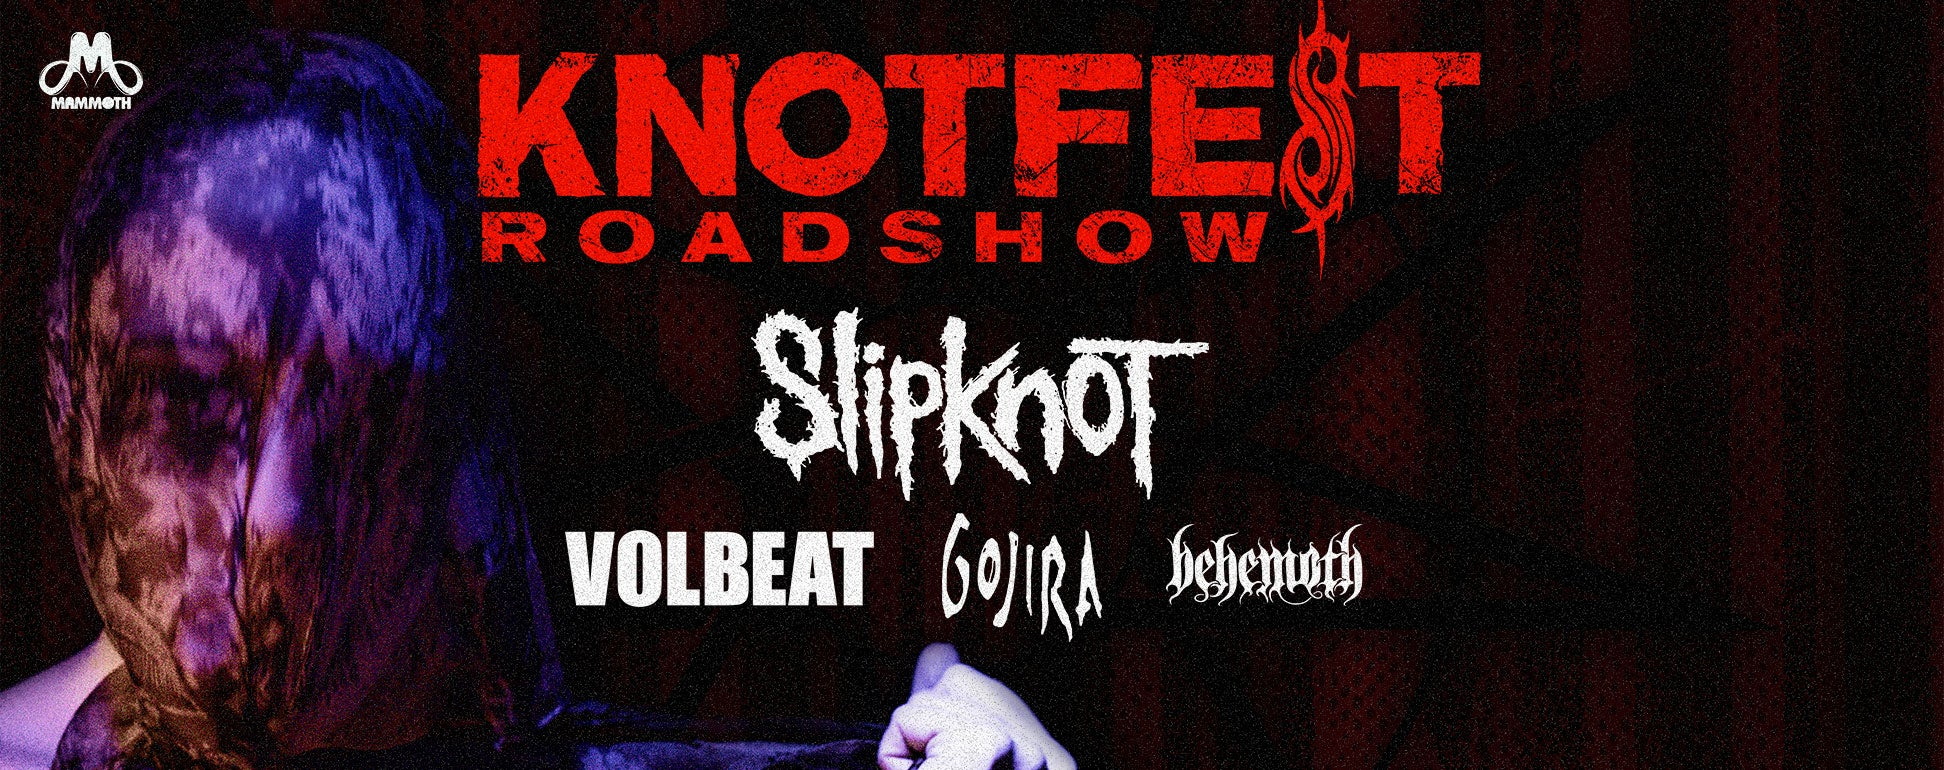 Knotfest Roadshow featuring: Slipknot, Volbeat, Gojira